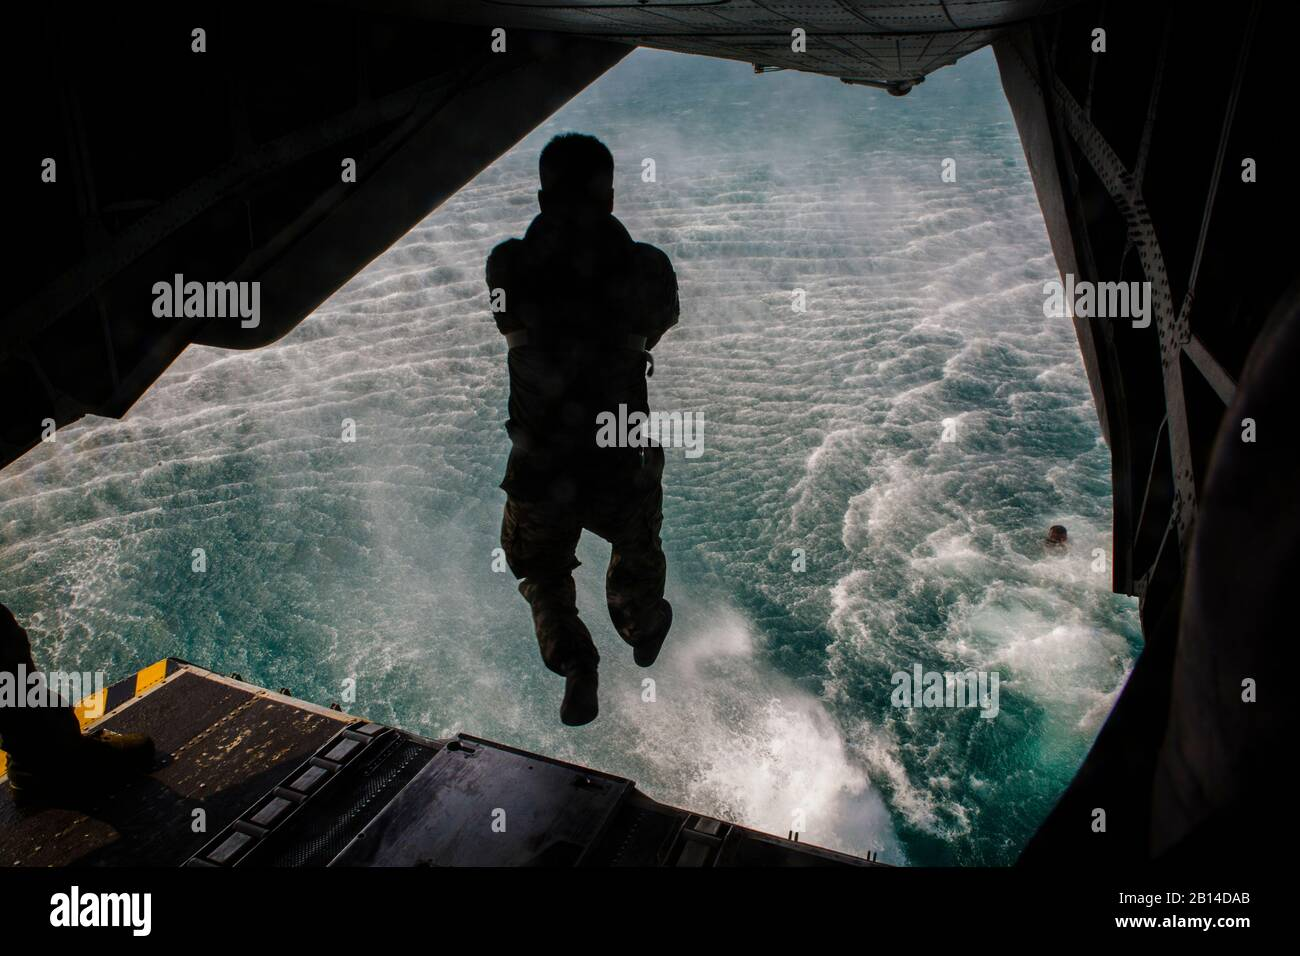 A Republic of Korea reconnaissance Marine dives off a CH-53E Super Stallion at the Sattahip district in the Chonburi province, Kingdom of Thailand, Feb. 12, 2018. Marine Heavy Helicopter Squadron 466 'Wolfpack' supported helocast training with the U.S., Thai, and ROK Marine Corps reconnaissance teams. The CH-53E Super Stallion is assigned to HMH-466, Marine Aircraft Group 16, 3rd Marine Aircraft Wing, currently forward deployed under the unit deployment program with MAG-36, 1st MAW, based out of Okinawa, Japan. Exercise Cobra Gold 2018 is an annual exercise conducted in the Kingdom of Thailand Stock Photo